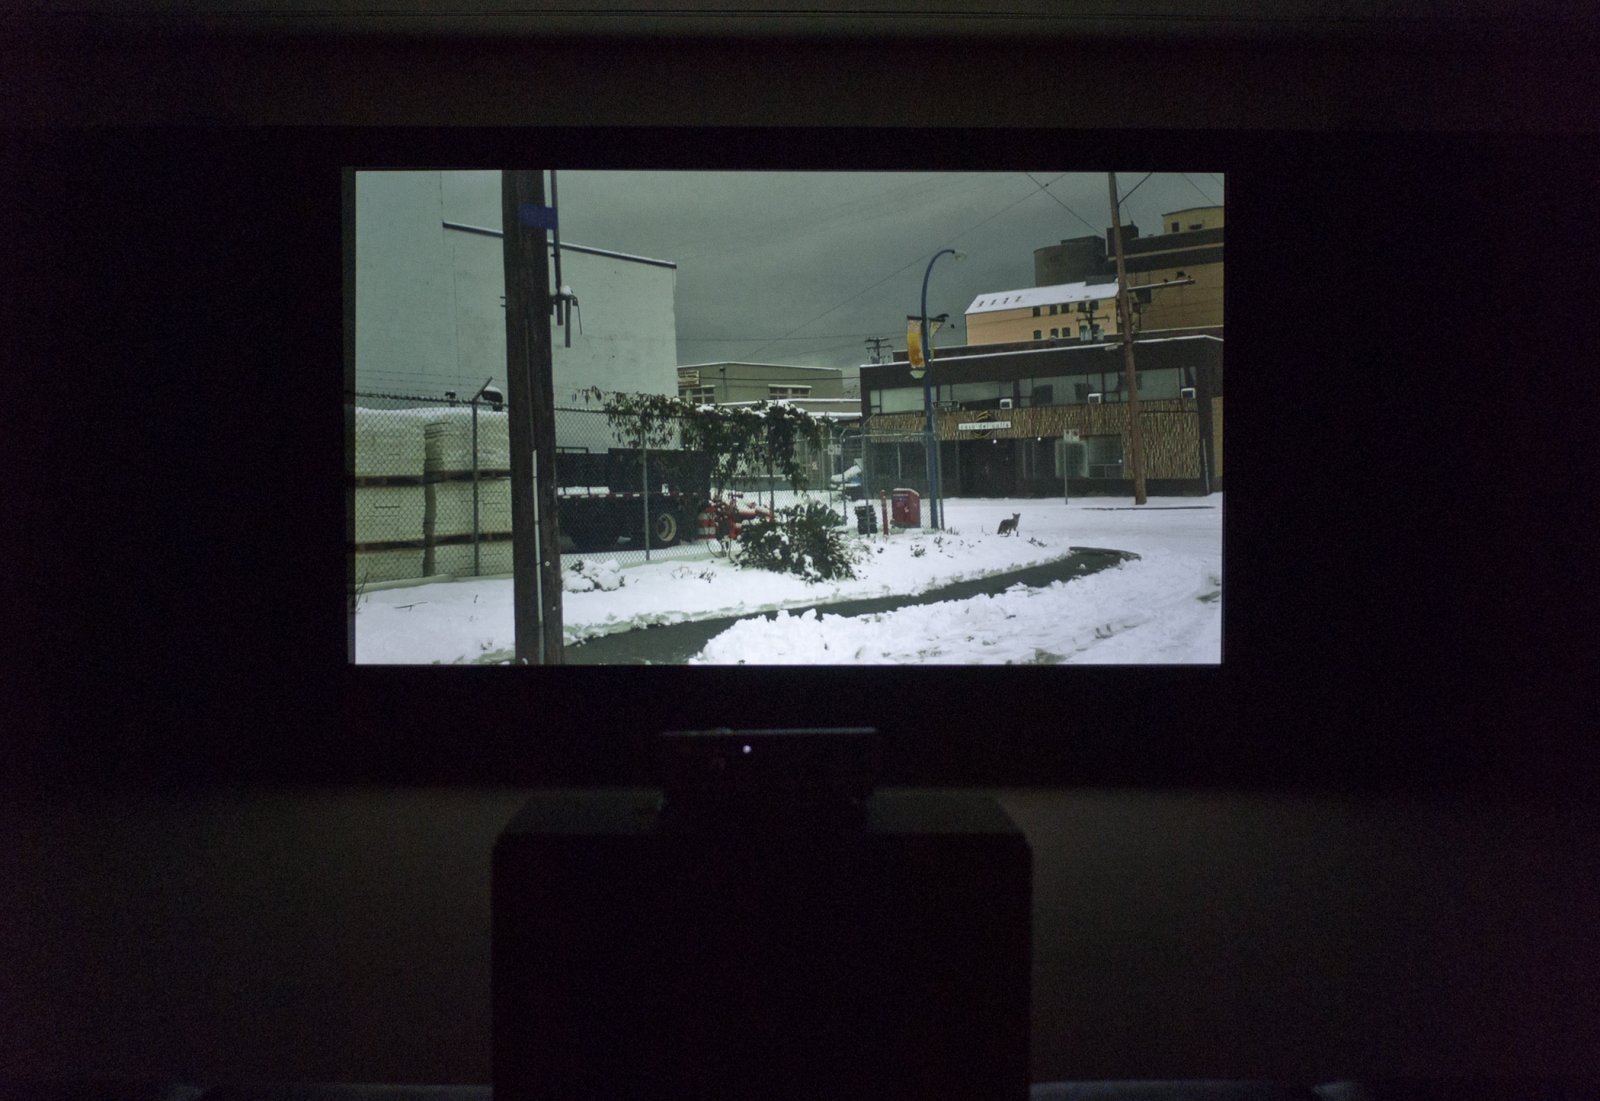 Duane Linklater, Something About Encounter, 2011-2013, HD iphone video with sound, dimensions variable. Installation view, Thunder Bay Art Gallery, Thunder Bay, 2013.